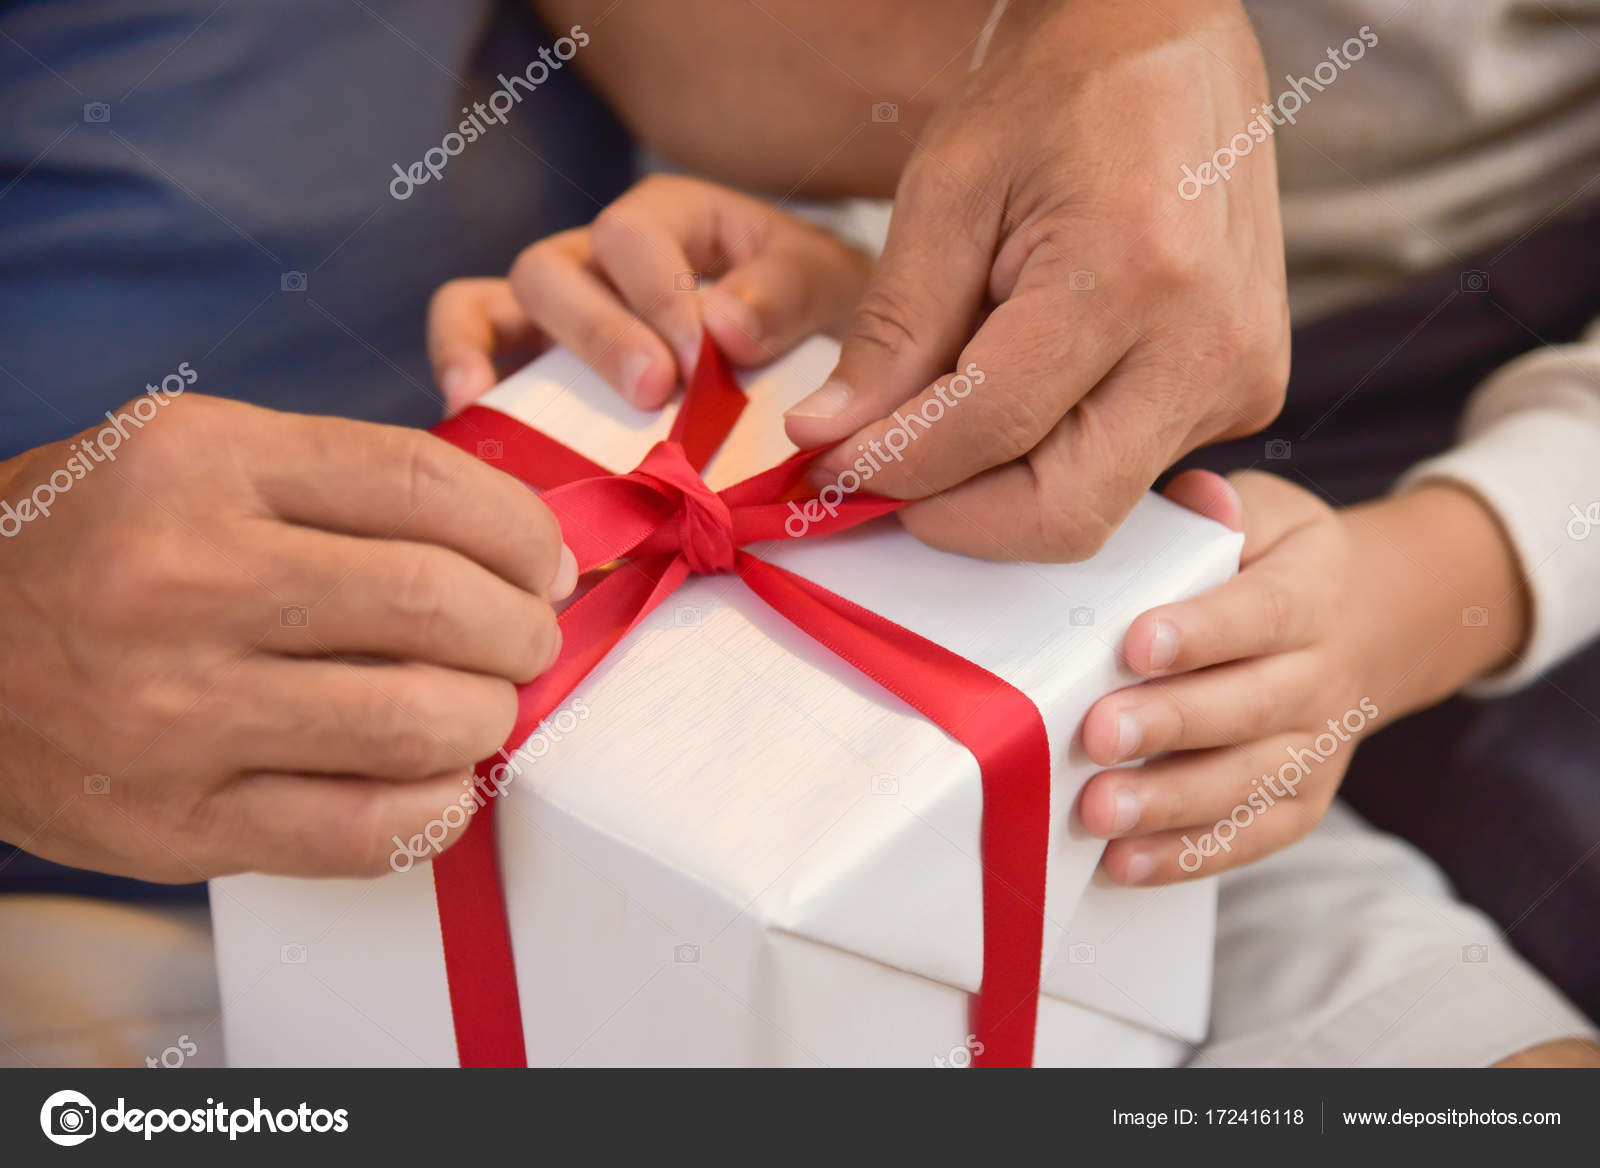 Asian Boy And Elderly Man Holding On Red Ribbon Of White Gift Box Birthday Christmas New Year Photo By Eggeeggjiew